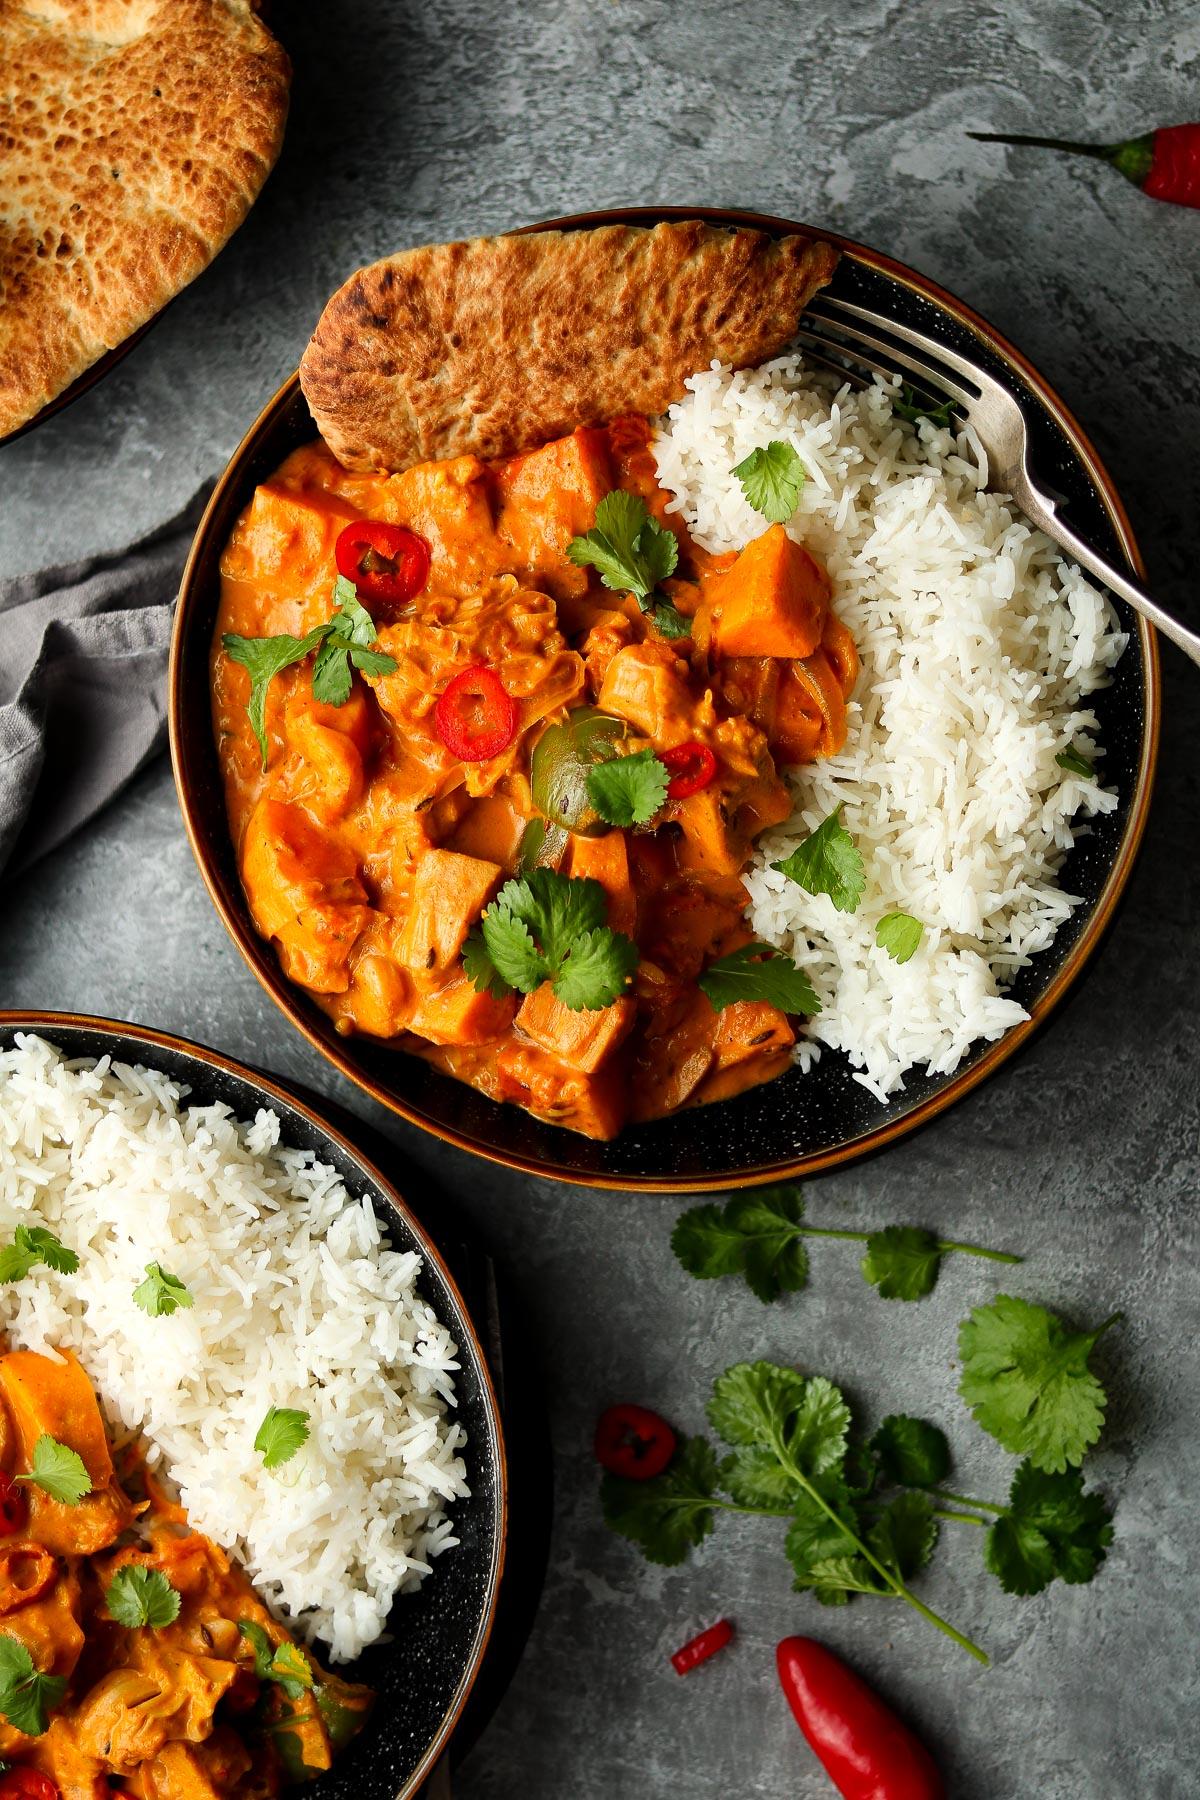 A jackfruit curry with sweet potatoes with rice and naan, with a coriander and chili garnish.